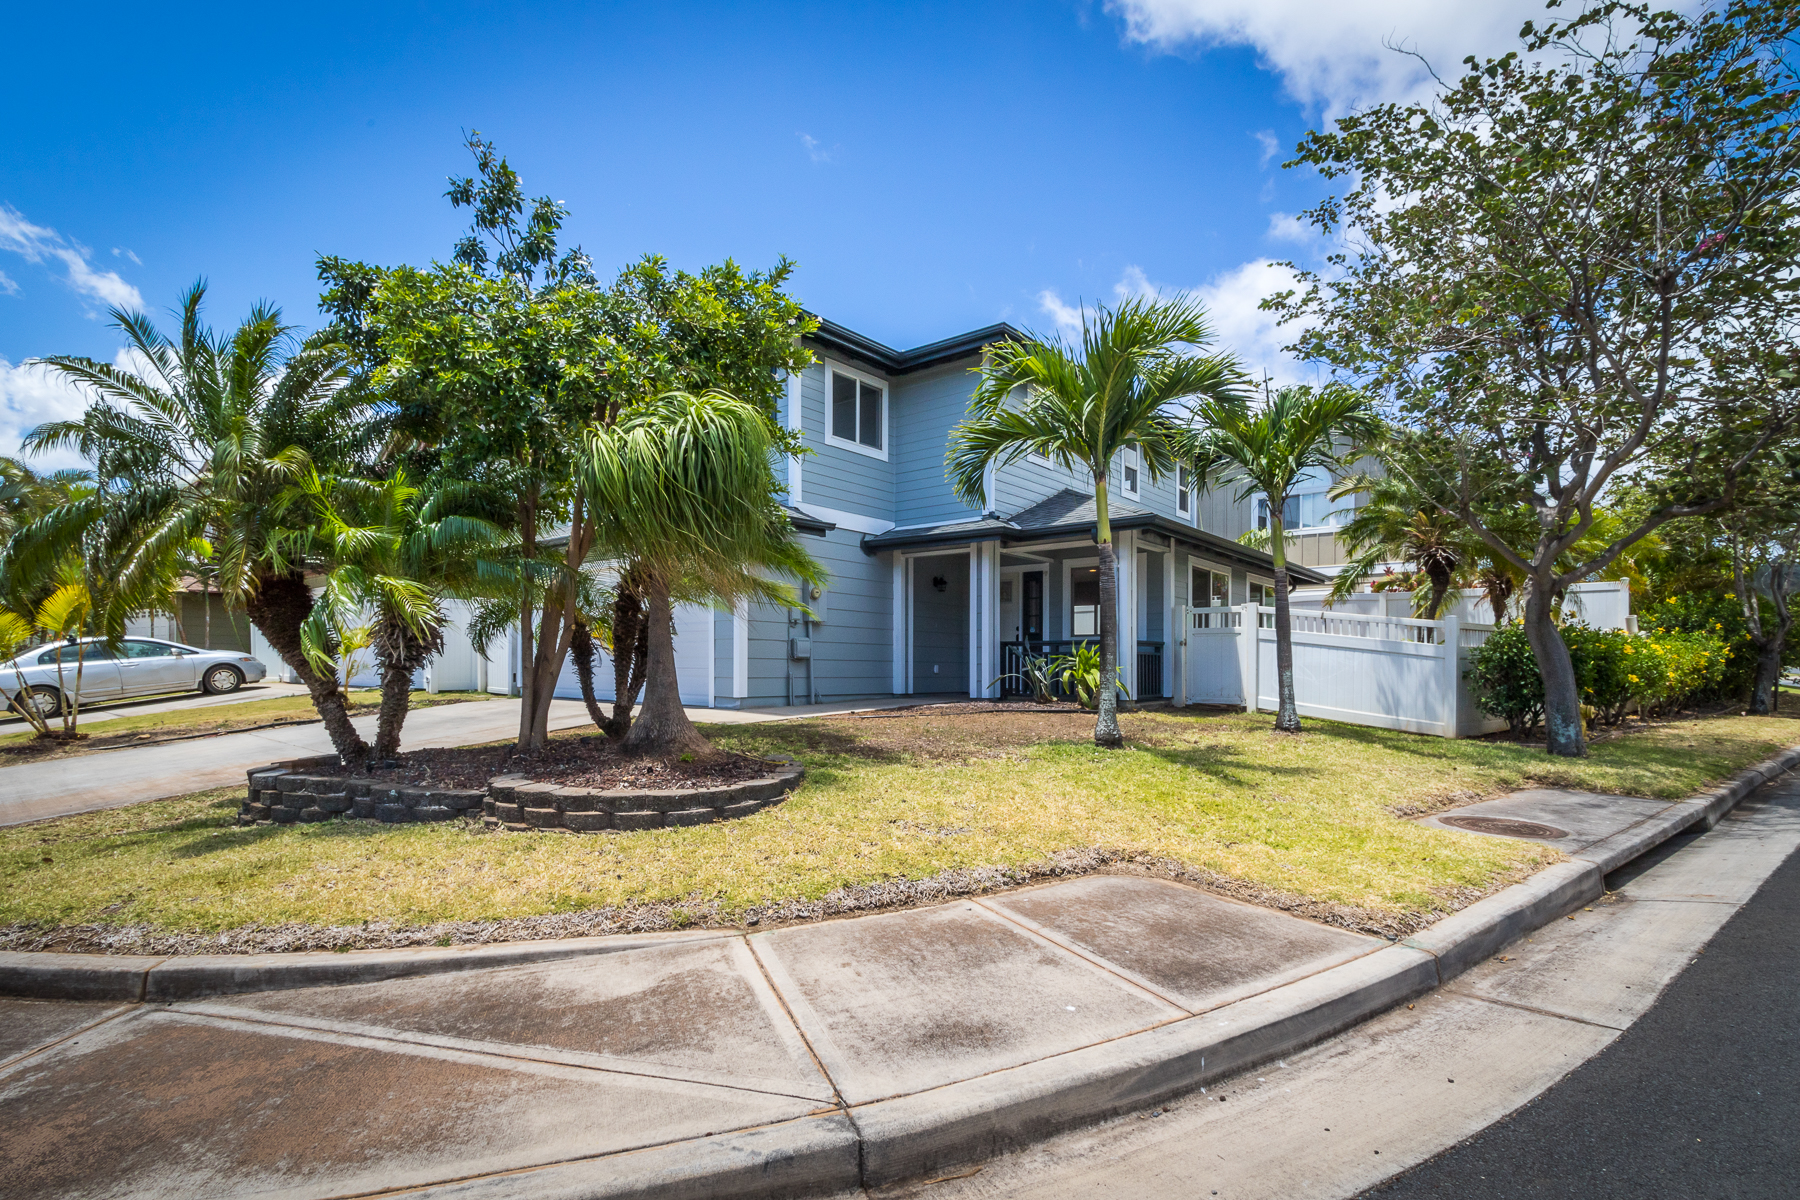 Single Family Home for Sale at Central Maui At It's Best! 8 E Makahehi Pl Kahului, Hawaii 96732 United States